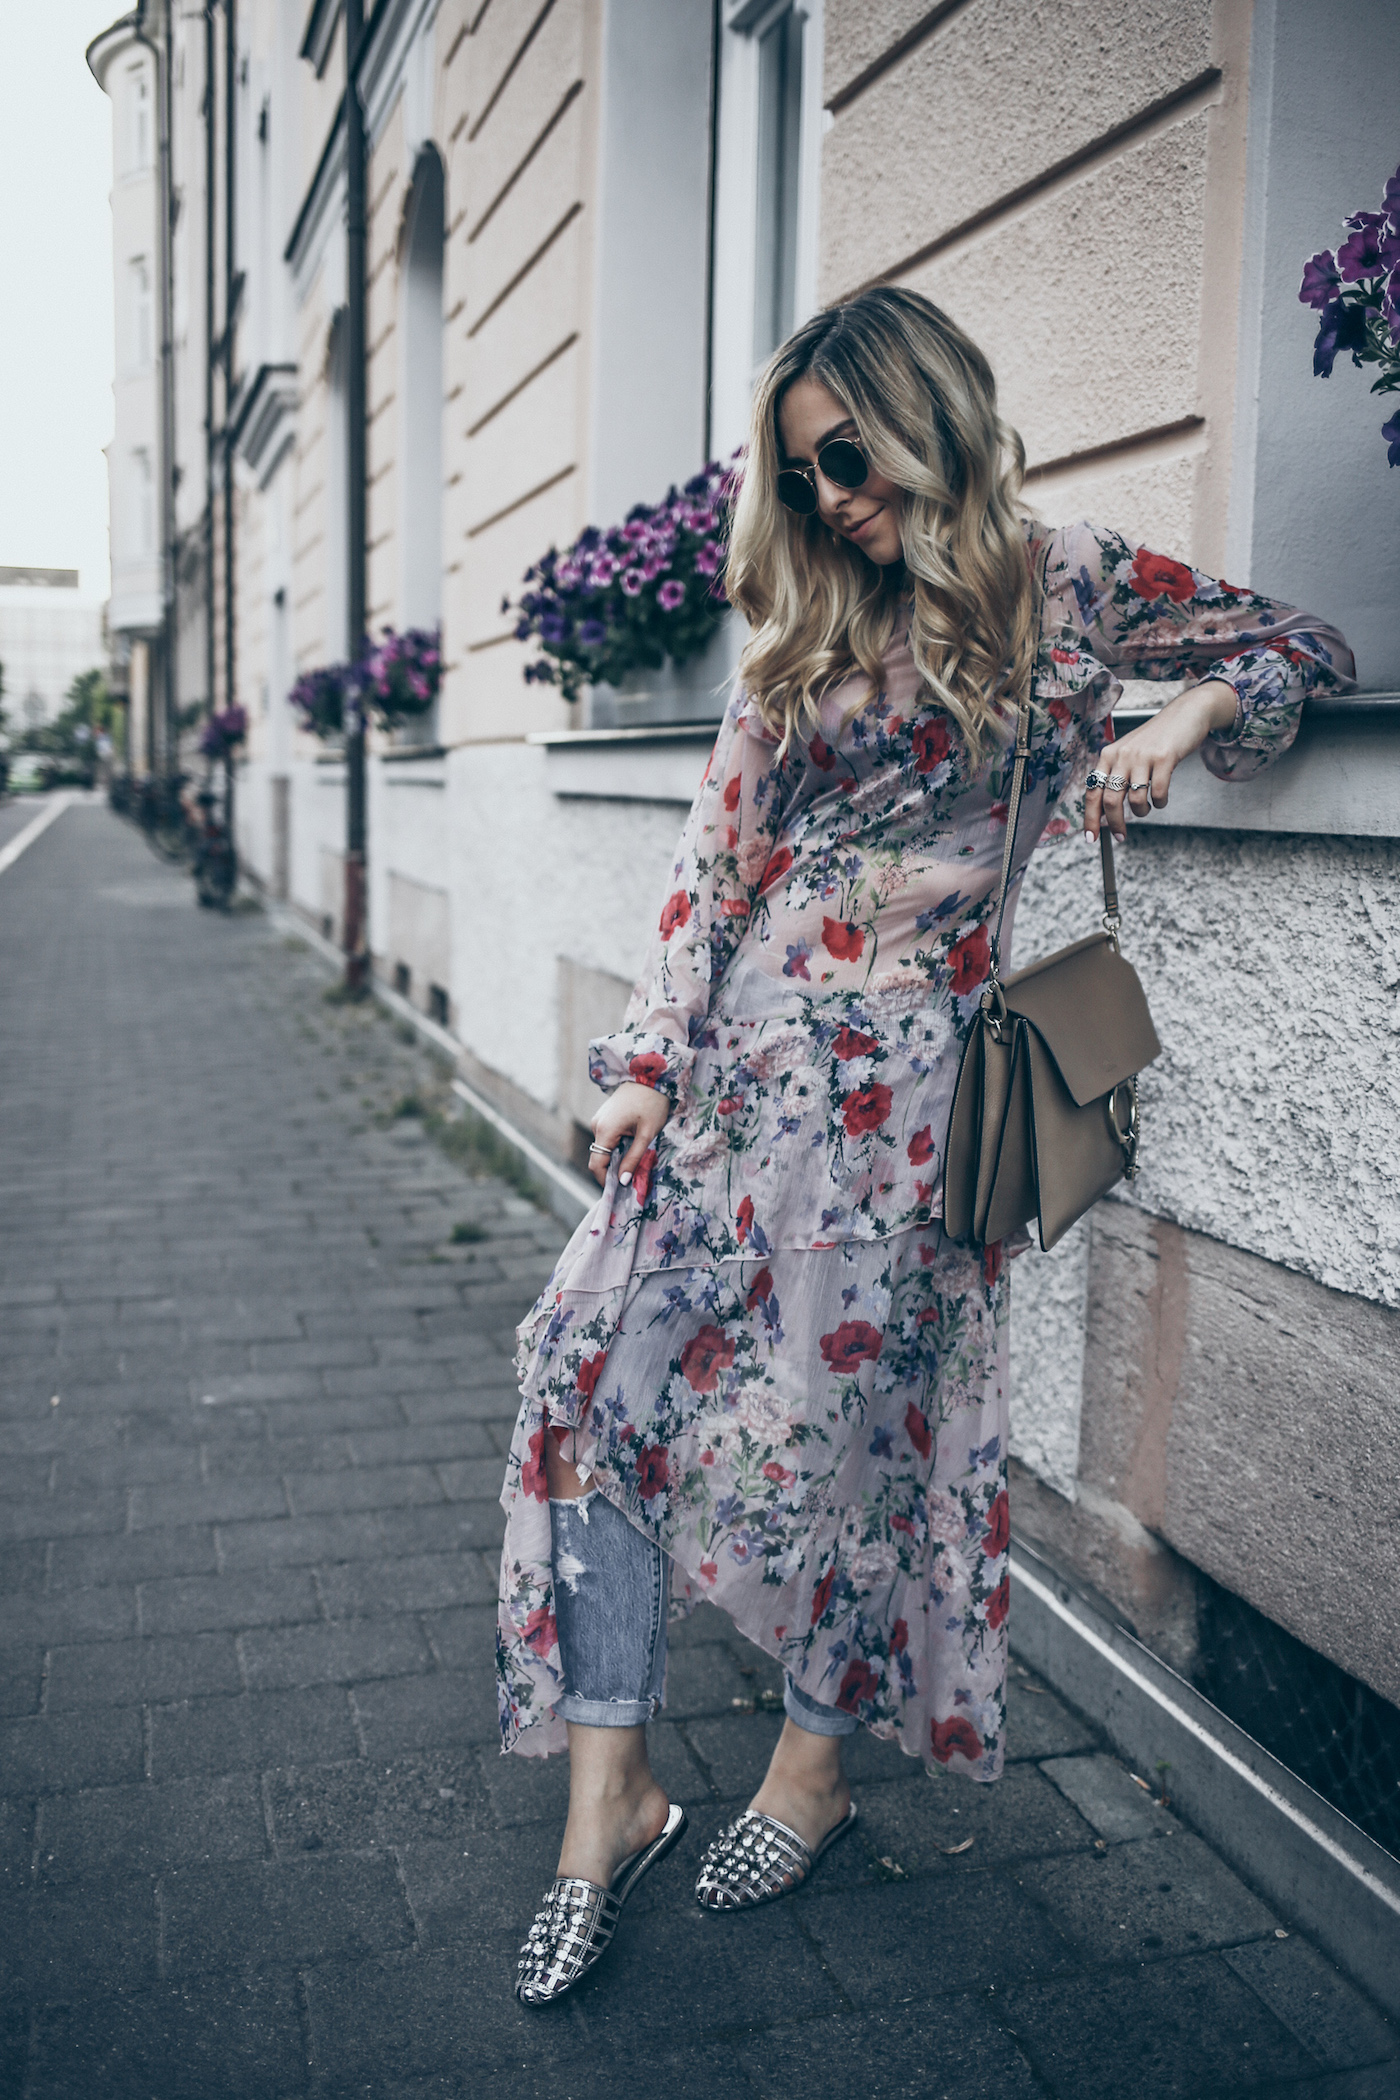 How to wear layering outfits in summer - Want Get Repeat b974f2349